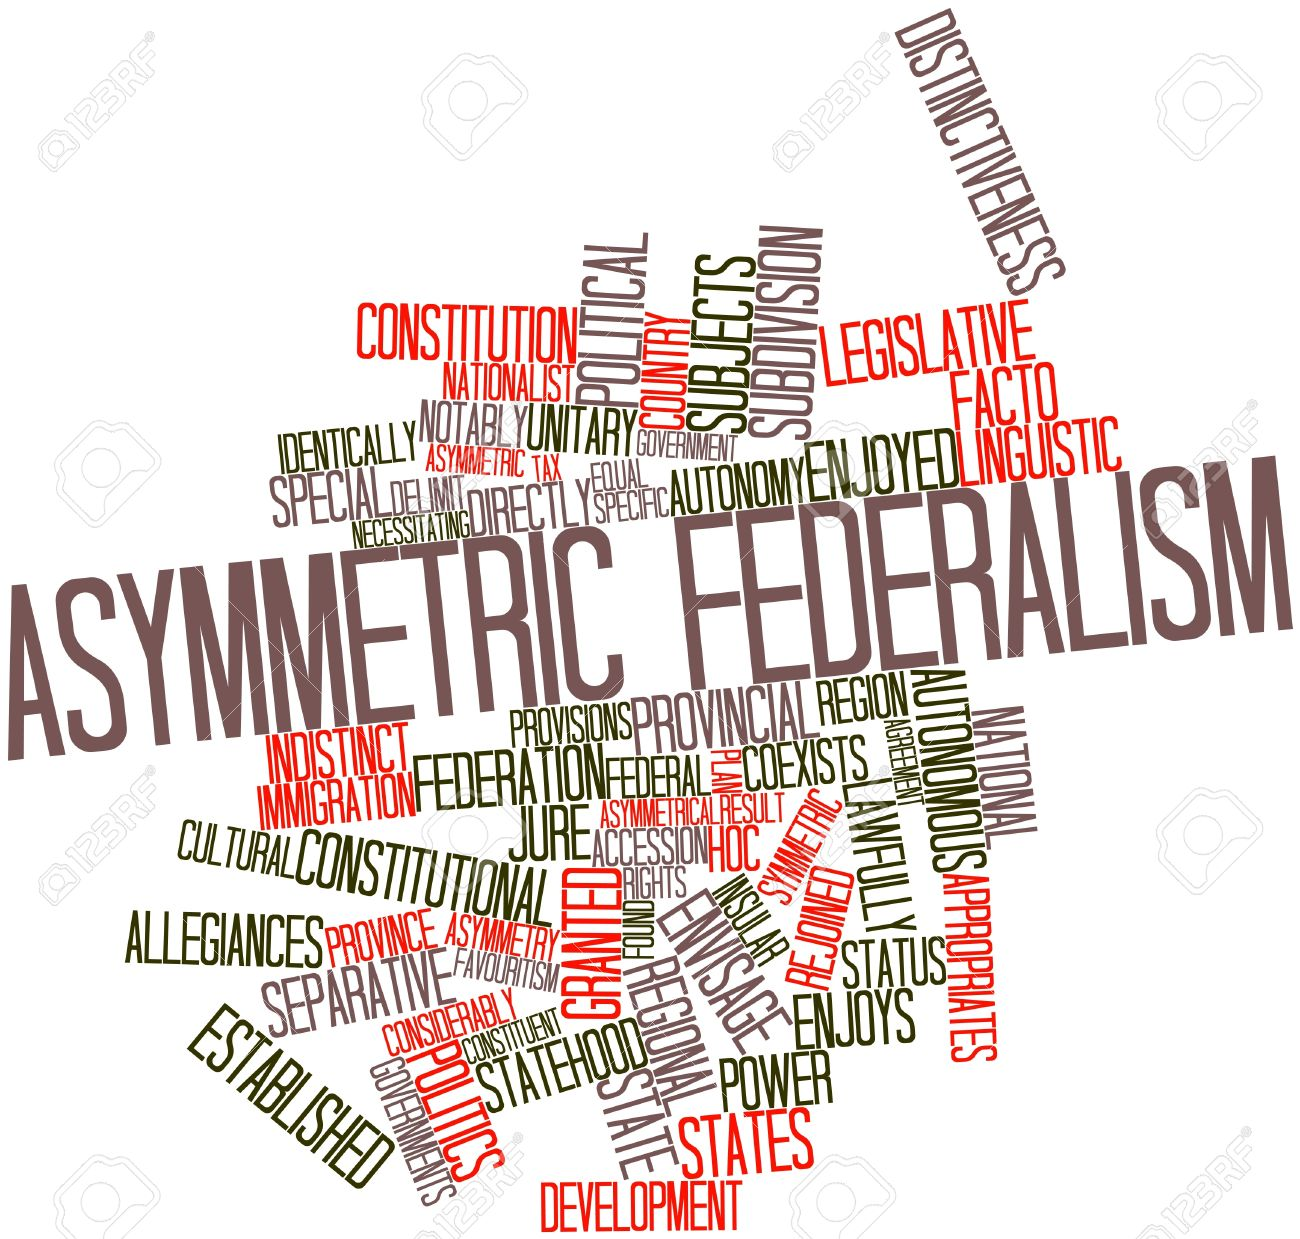 Federalism clipart 3 » Clipart Station.